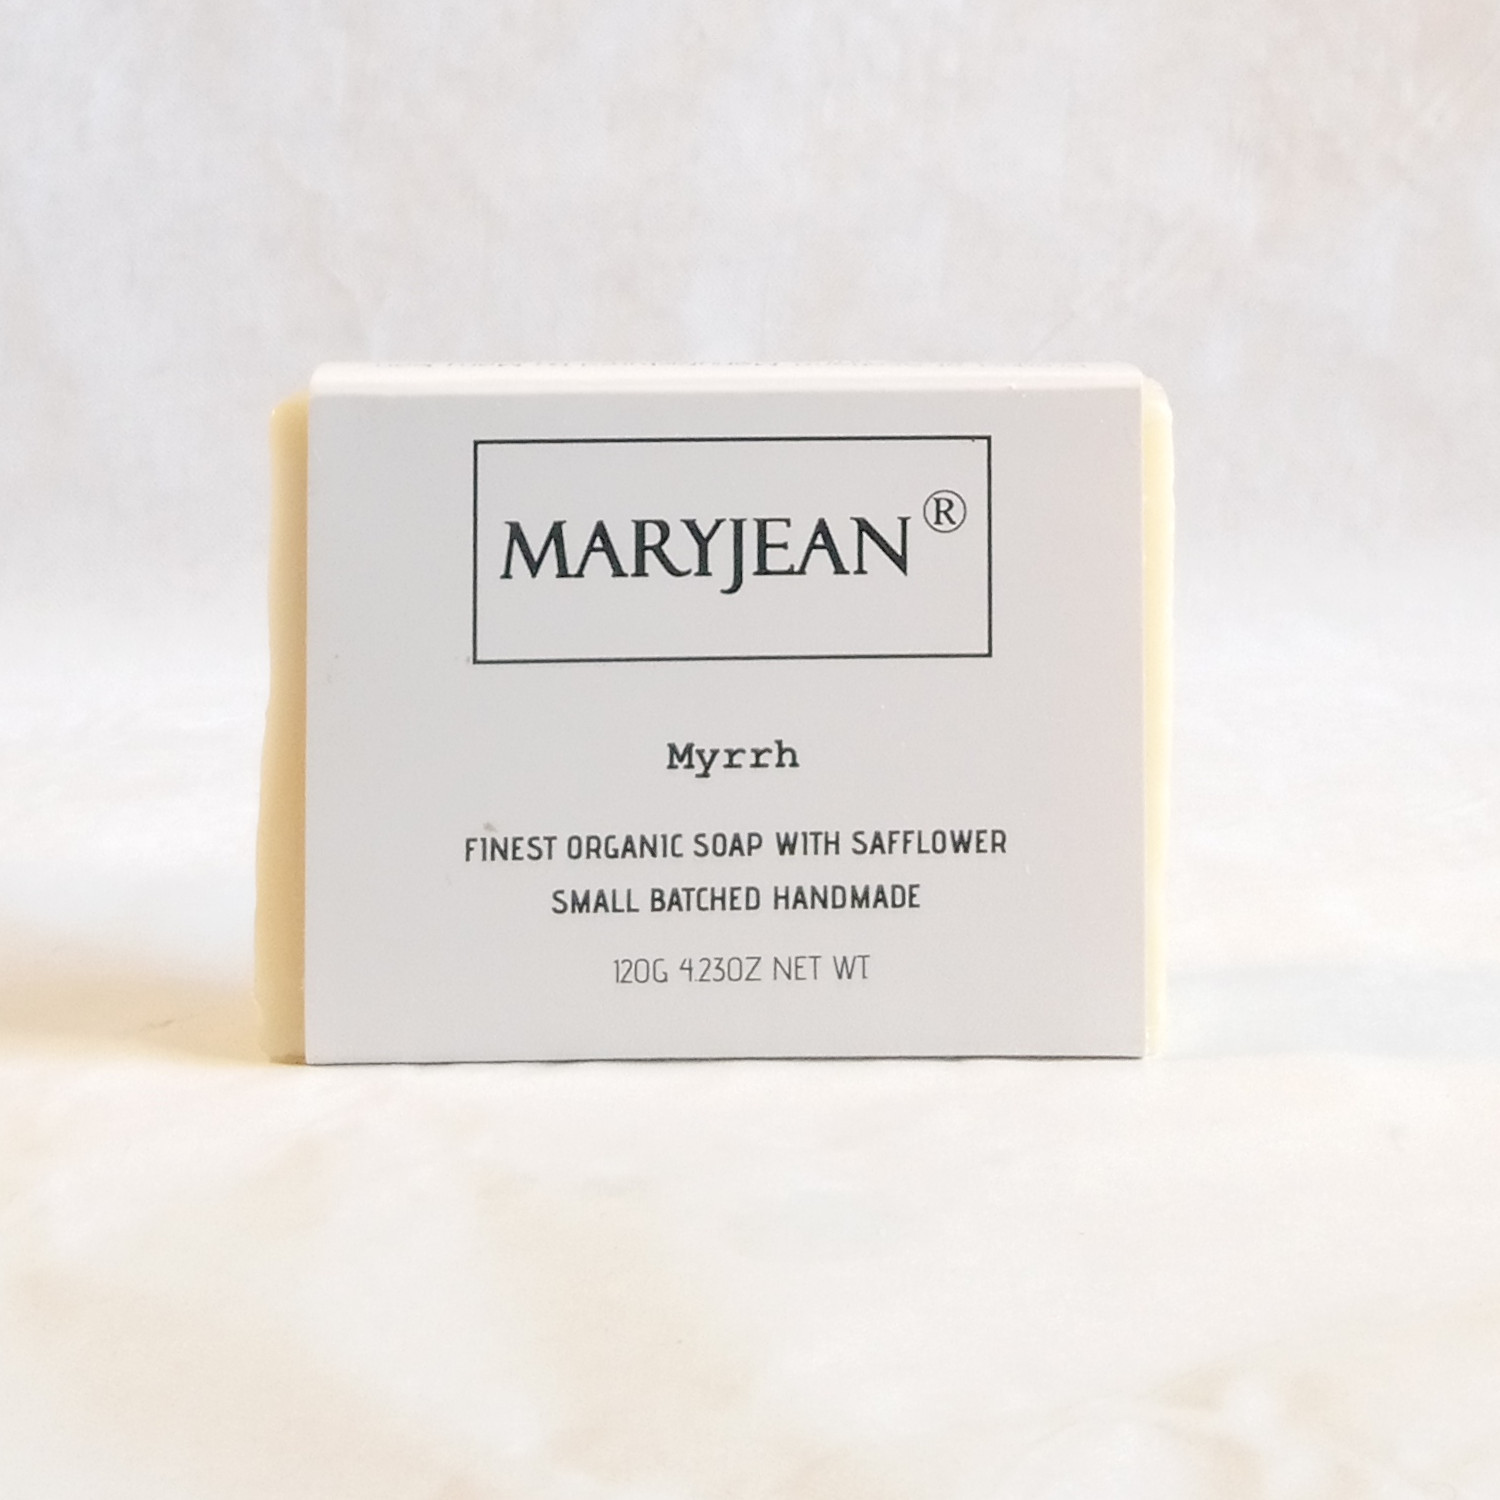 Twin Pack 2 Organic Scottish Myrrh Plastic And Sulphate Free Soaps Handmade With Safflower Best care of the health of your skin for outdoor lifestyle and sport reduces environmental stress prevents dryness and cell damage